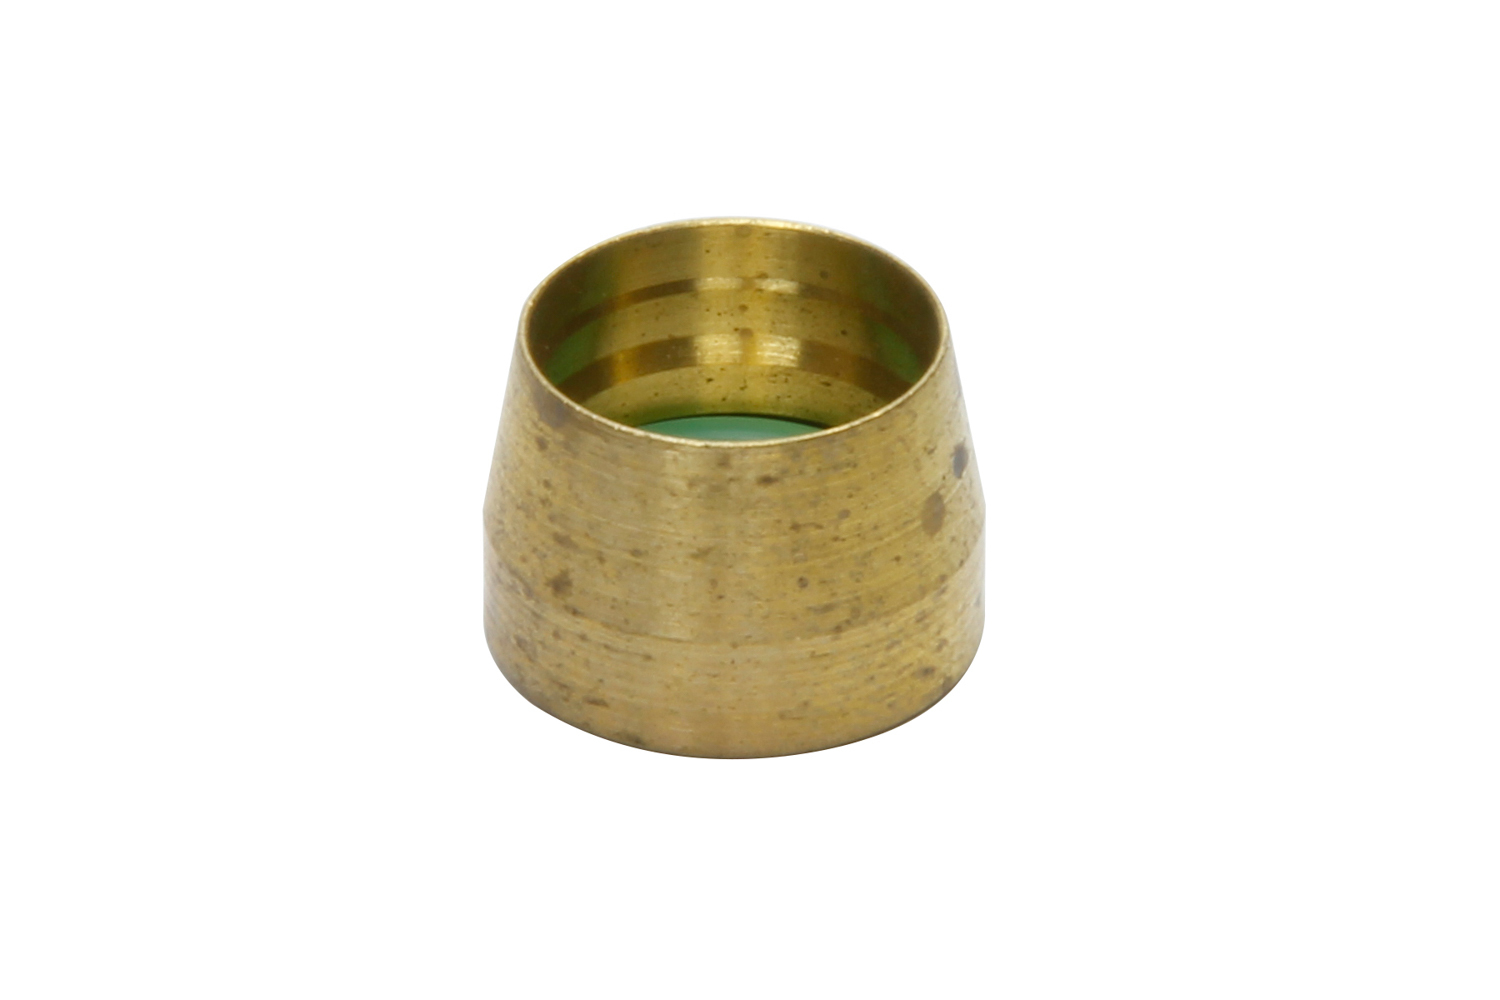 Vintage Air 36008-VUR Compression Ferrule, Cone Style, 8 AN, Brass, Natural, Air Conditioning Tube, Each